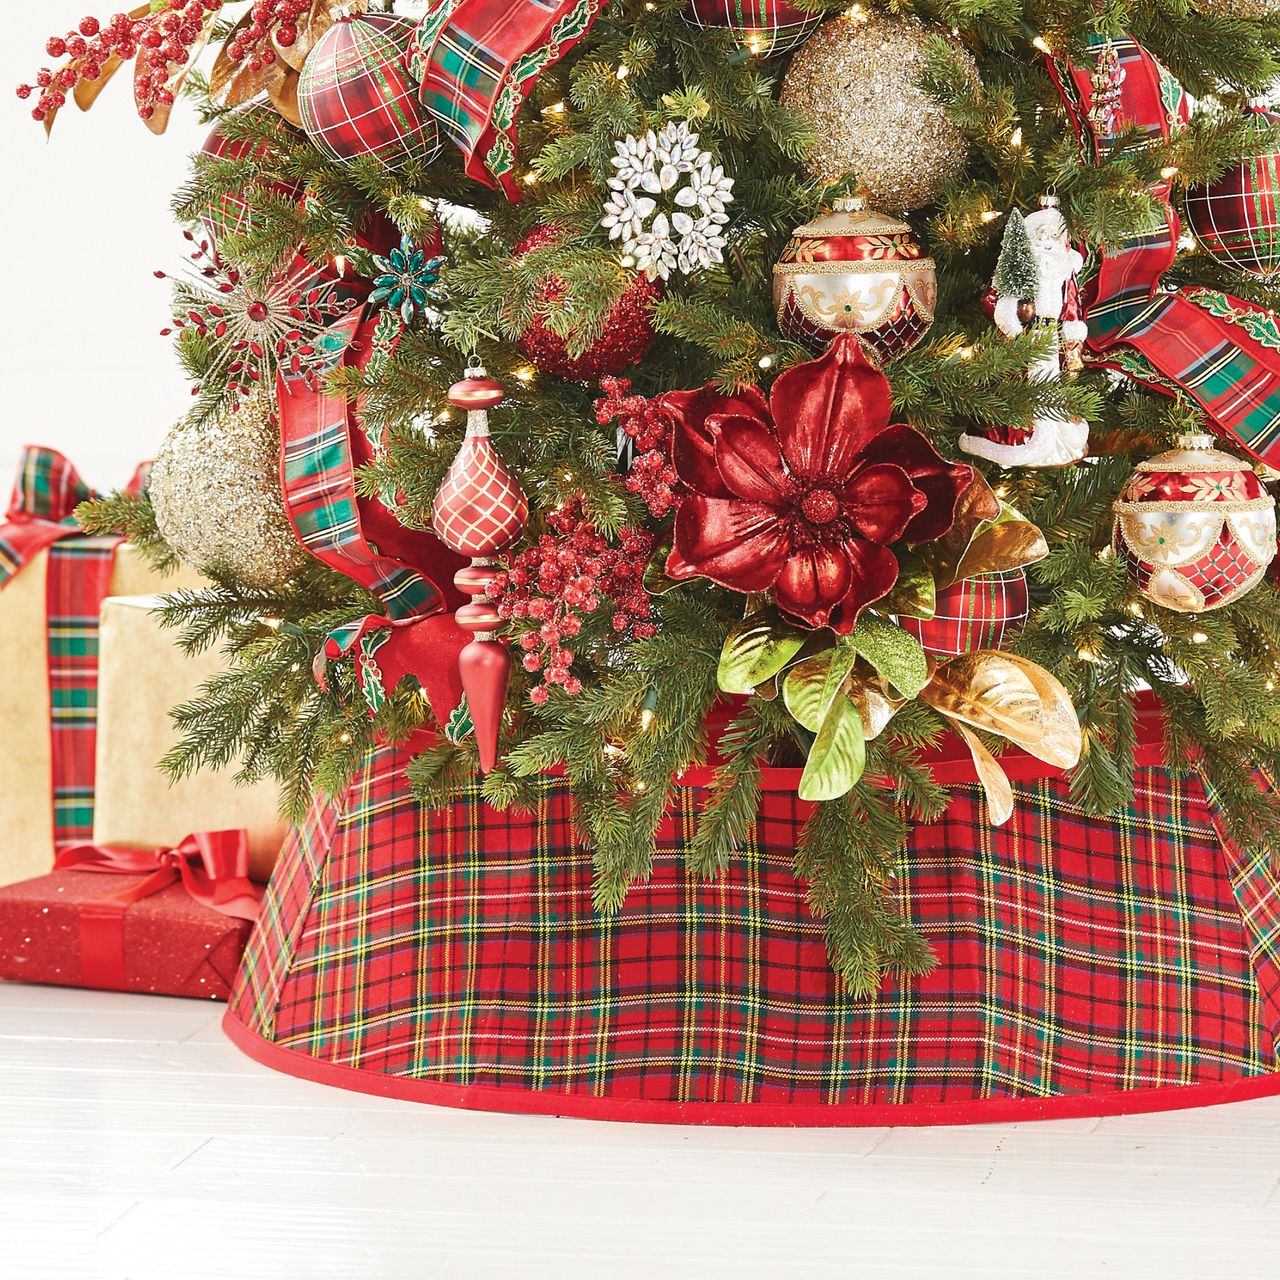 Raz 36 Red Plaid Tree Collar Christmas Tree Skirt Raz Imports Raz Christmas C Christmas Tree Accessories Gingerbread Christmas Tree Plaid Christmas Tree